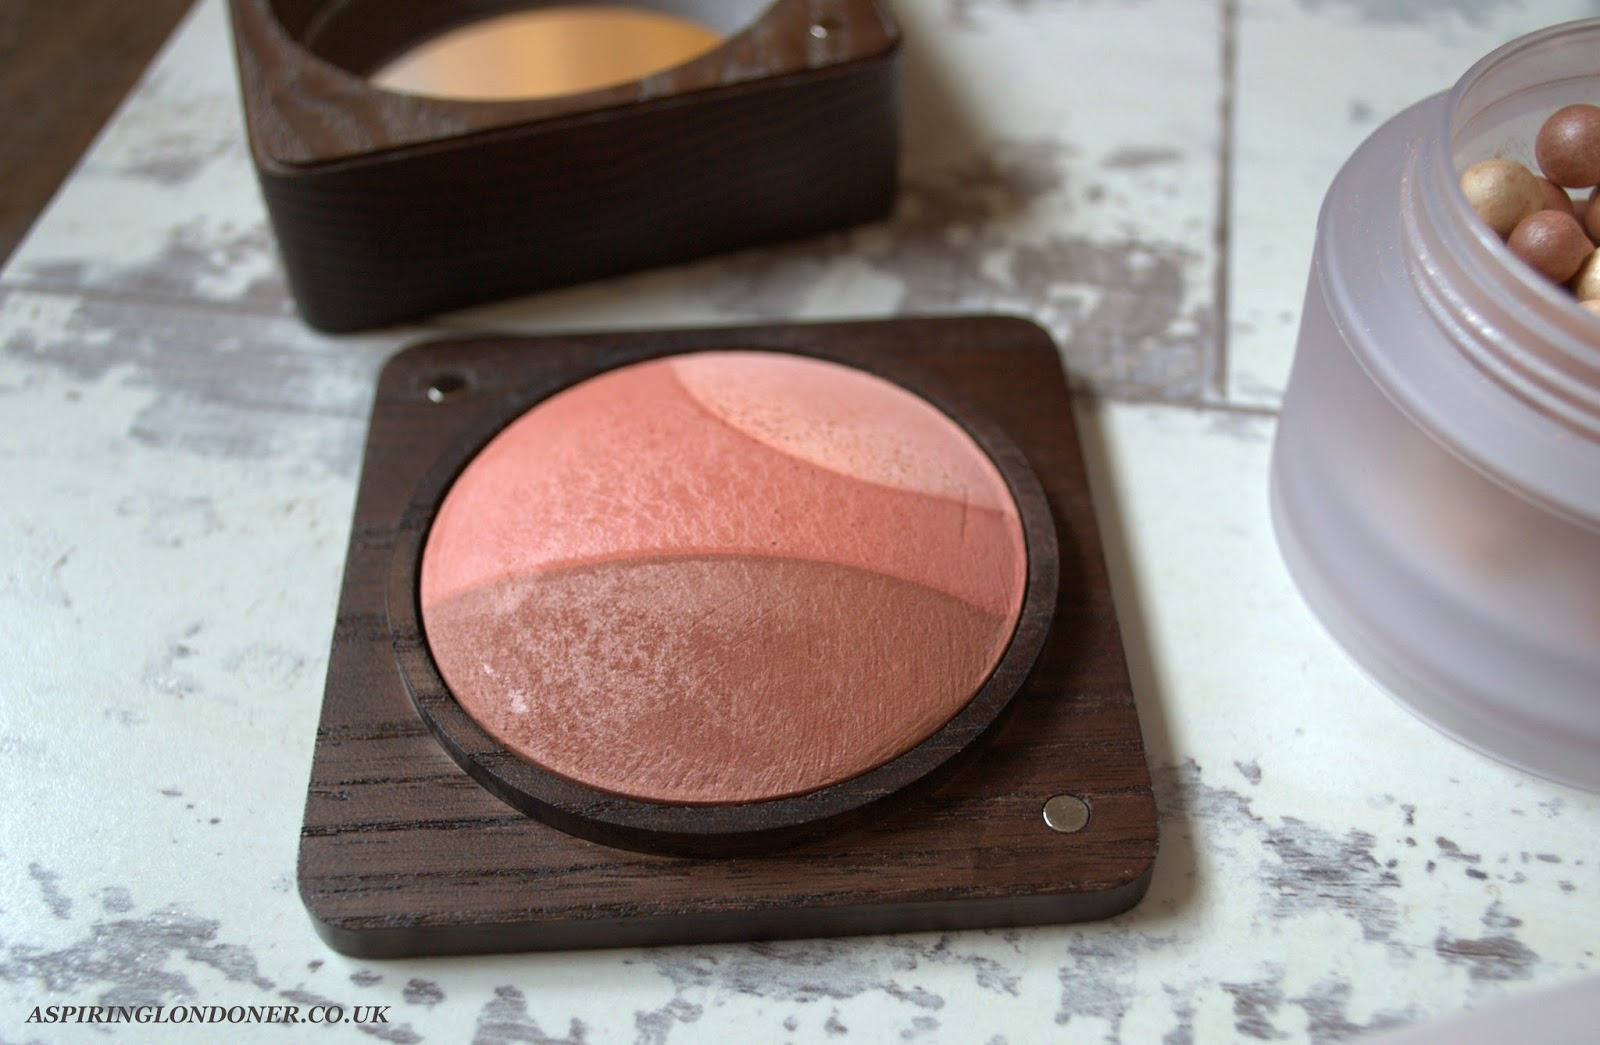 Kiko Cosmetics Modern Tribes Tri-bal Soul Baked Blush Mysterious Earth Swatch - Aspiring Londoner